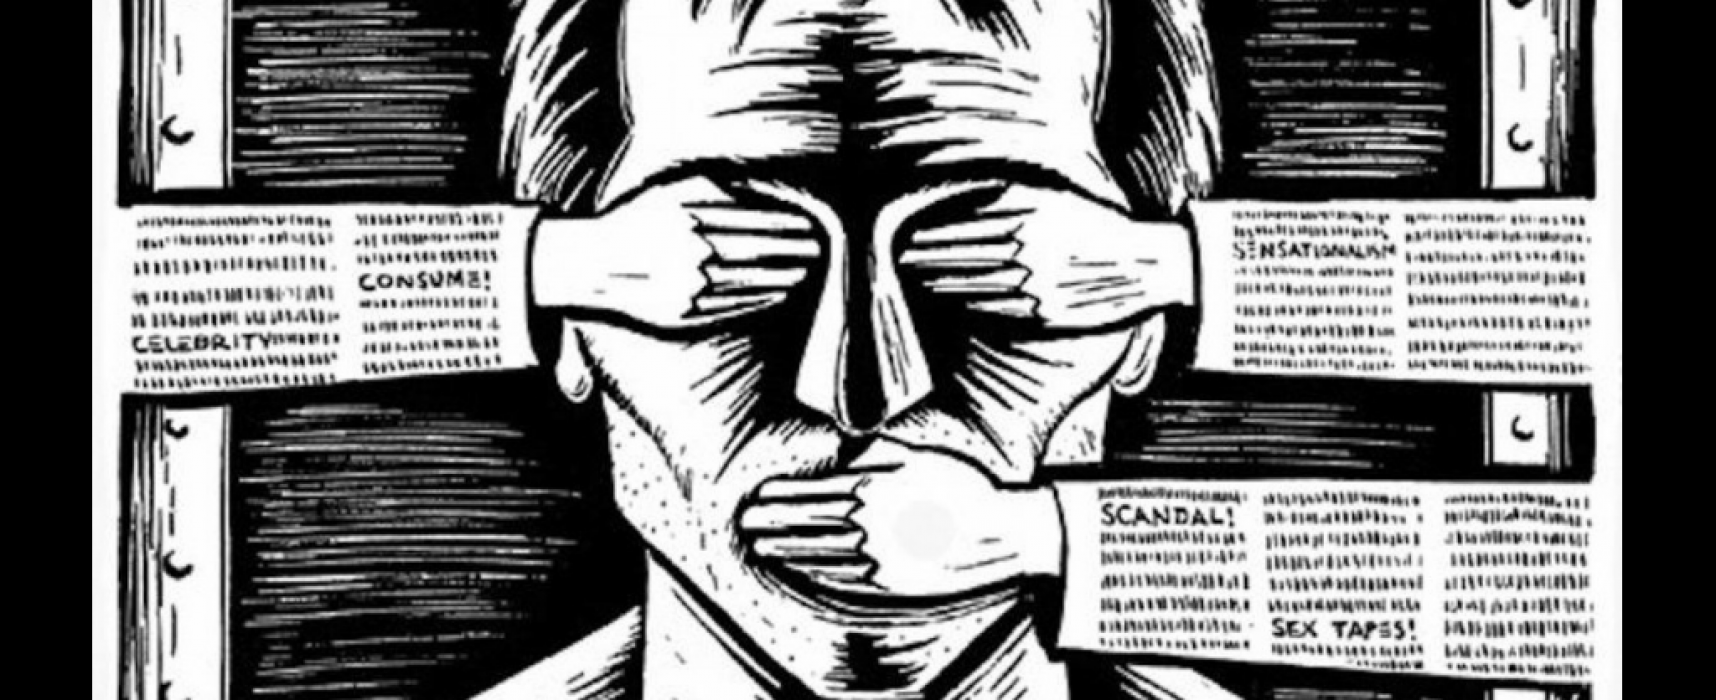 Disinformation and censorship: Two sides of the same coin in Russia